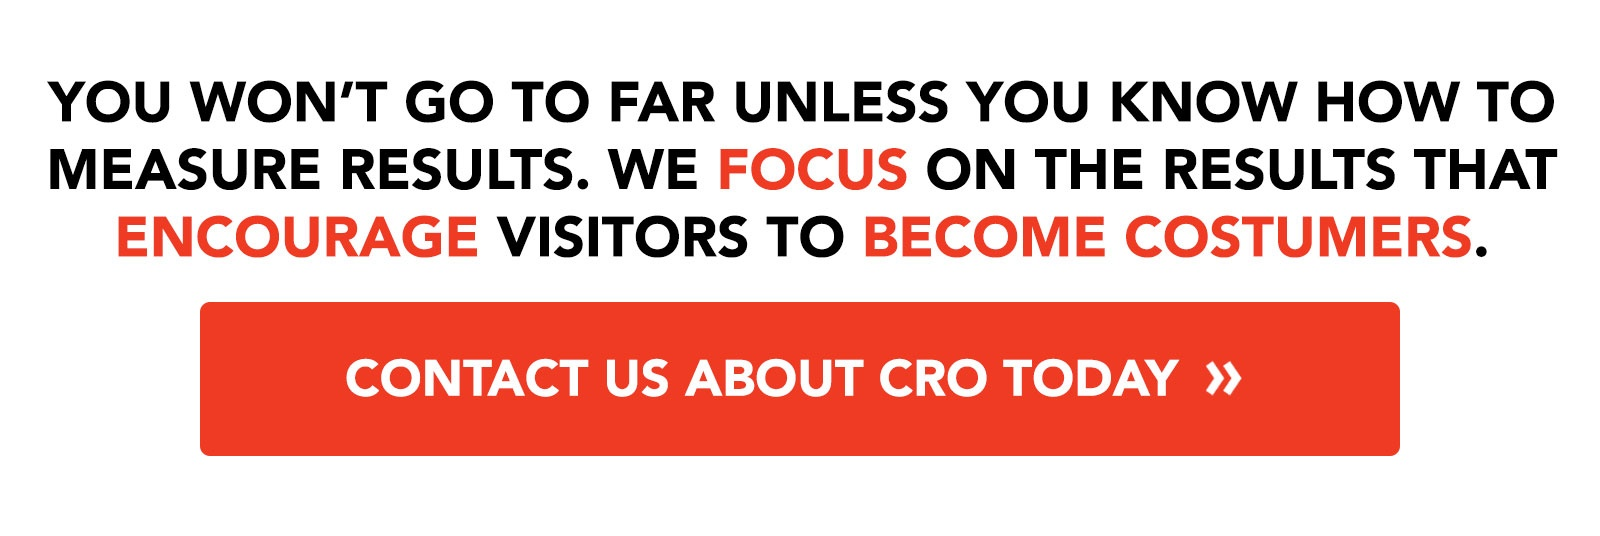 Contact us about cro today